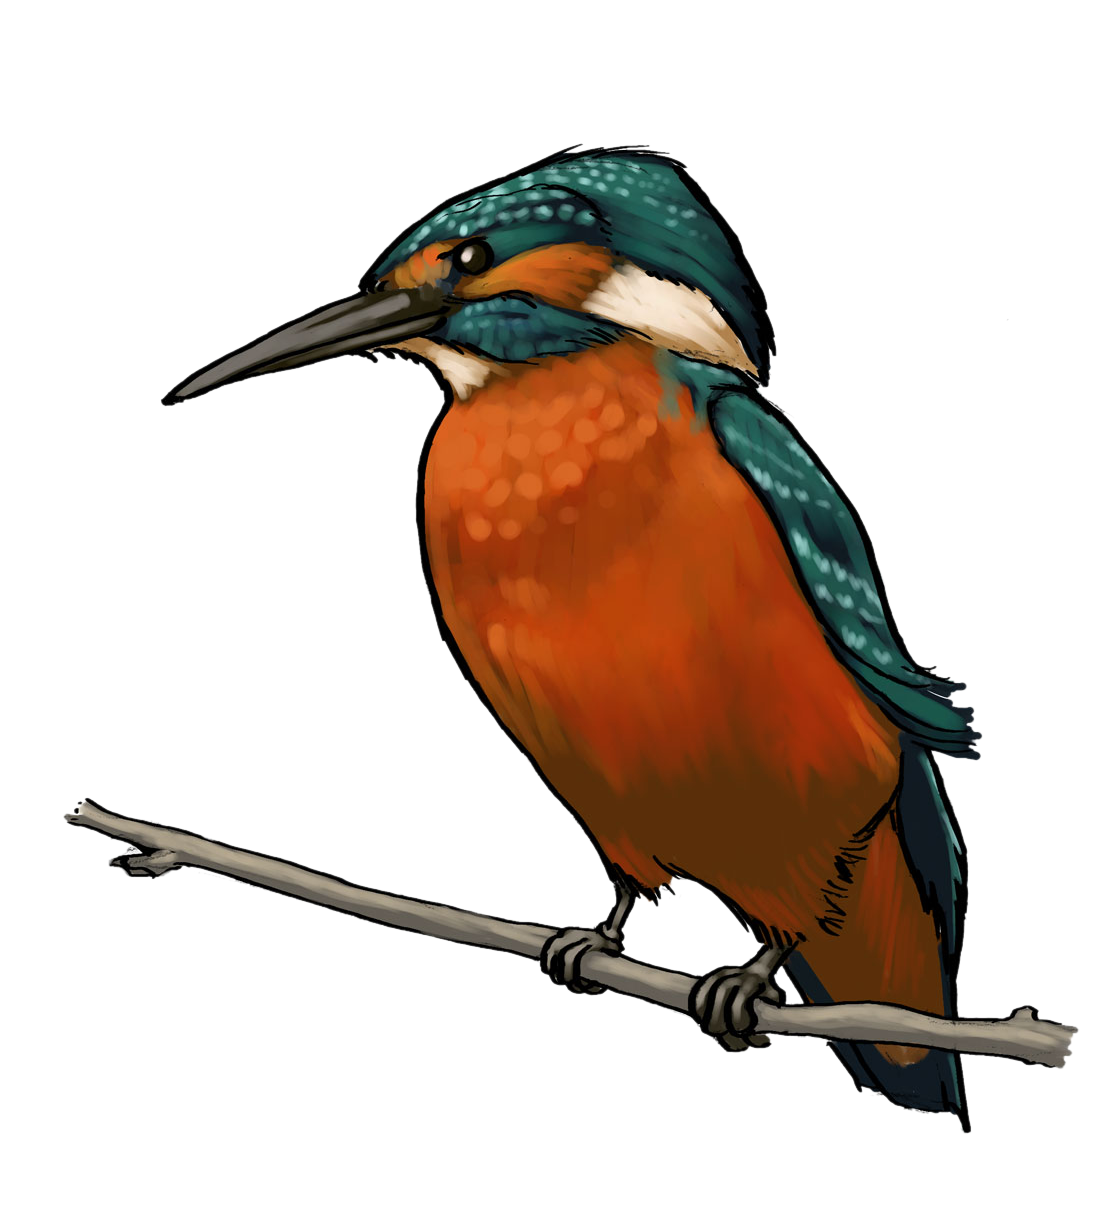 Kingfisher clipart #6, Download drawings